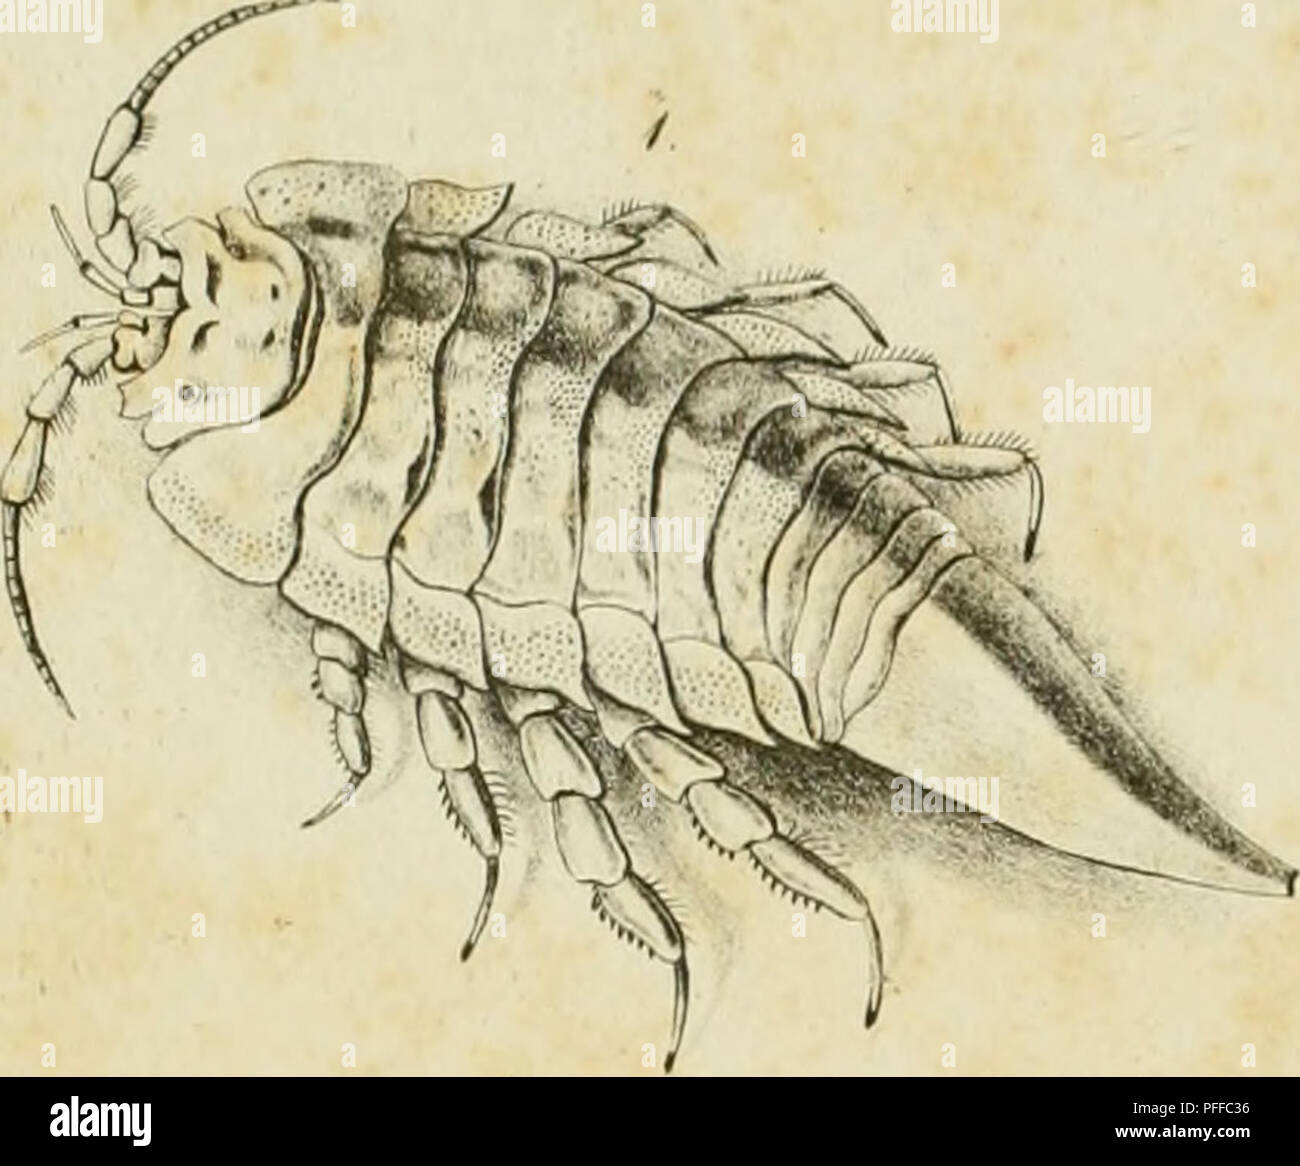 . D. Eduardi Eichwaldi, publ. ord. apud Casanens. Profess. Acad. Caes. Nat. Cur. Leop. Carol. mult. Societ. Liter. Socii, Geognostico-zoologicae per ingriam marisque Baltici provincias nec non de trilobitis observationes. Geology; Zoology; Paleontology. /.//. y. 1 r.. Please note that these images are extracted from scanned page images that may have been digitally enhanced for readability - coloration and appearance of these illustrations may not perfectly resemble the original work.. Eichwald, Carl Eduard von, 1795-1876; Kazanski universitet. Casani : Typis Universitatis Caesareis - Stock Image